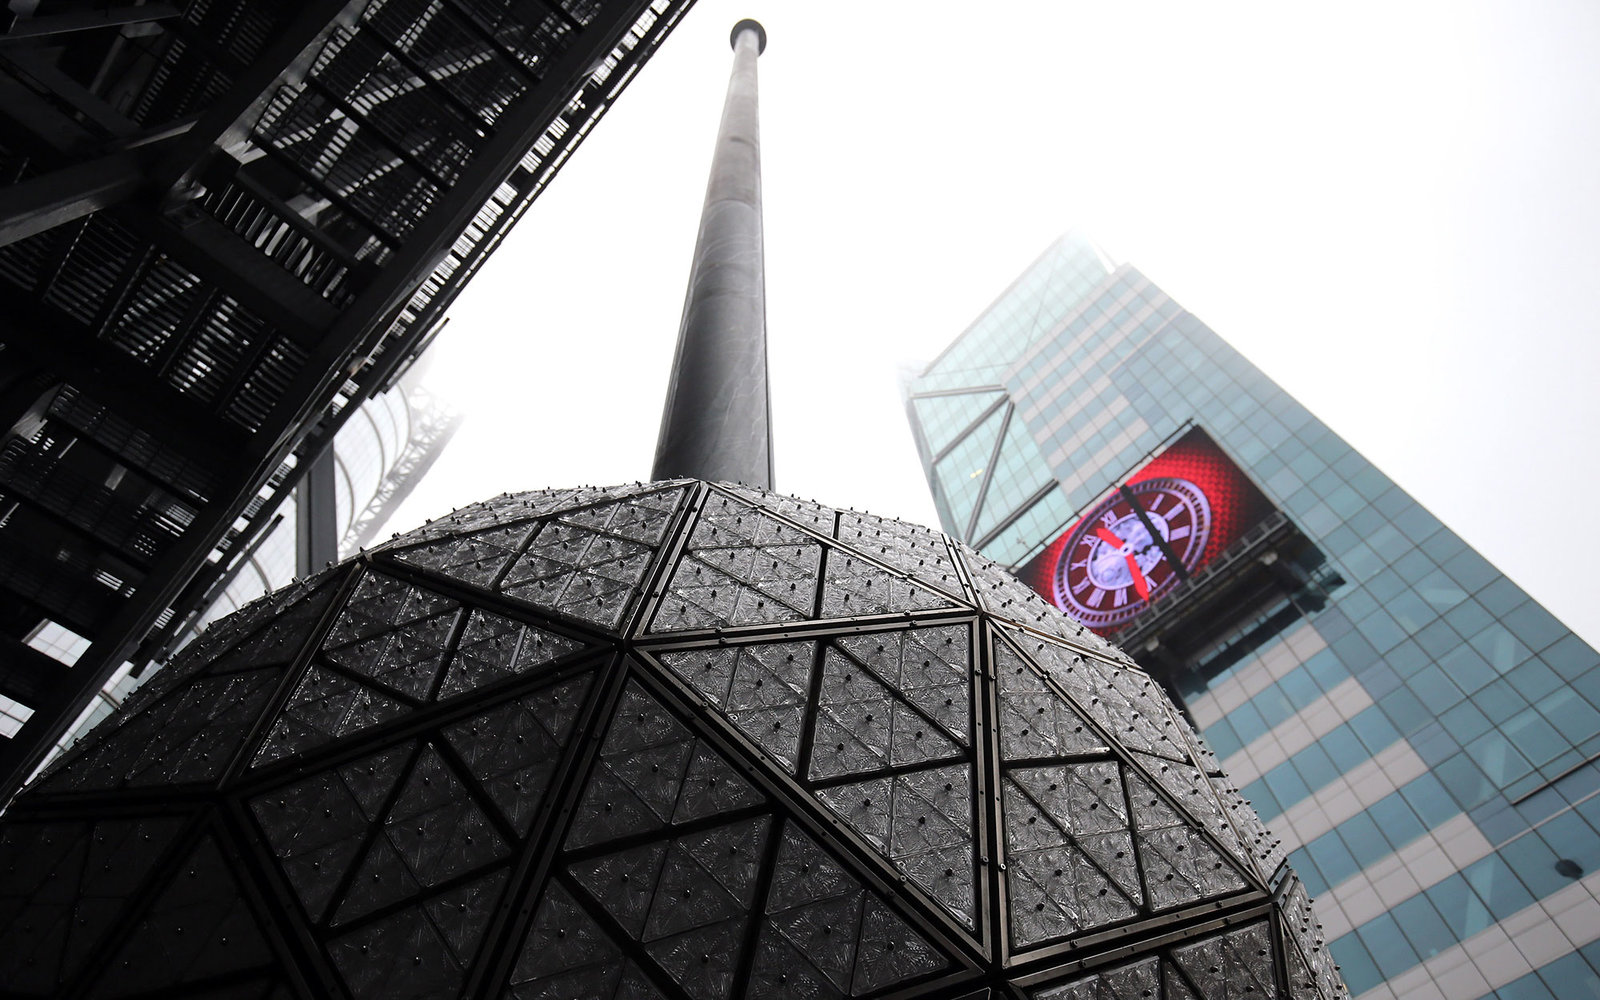 NEW YORK, NY - DECEMBER 27:  A general view of the Times Square New Year's Eve Ball during the installation of 288 new Waterford crystals on the Times Square New Year's Eve Ball at Times Square on December 27, 2015 in New York City.  (Photo by Neilson Bar